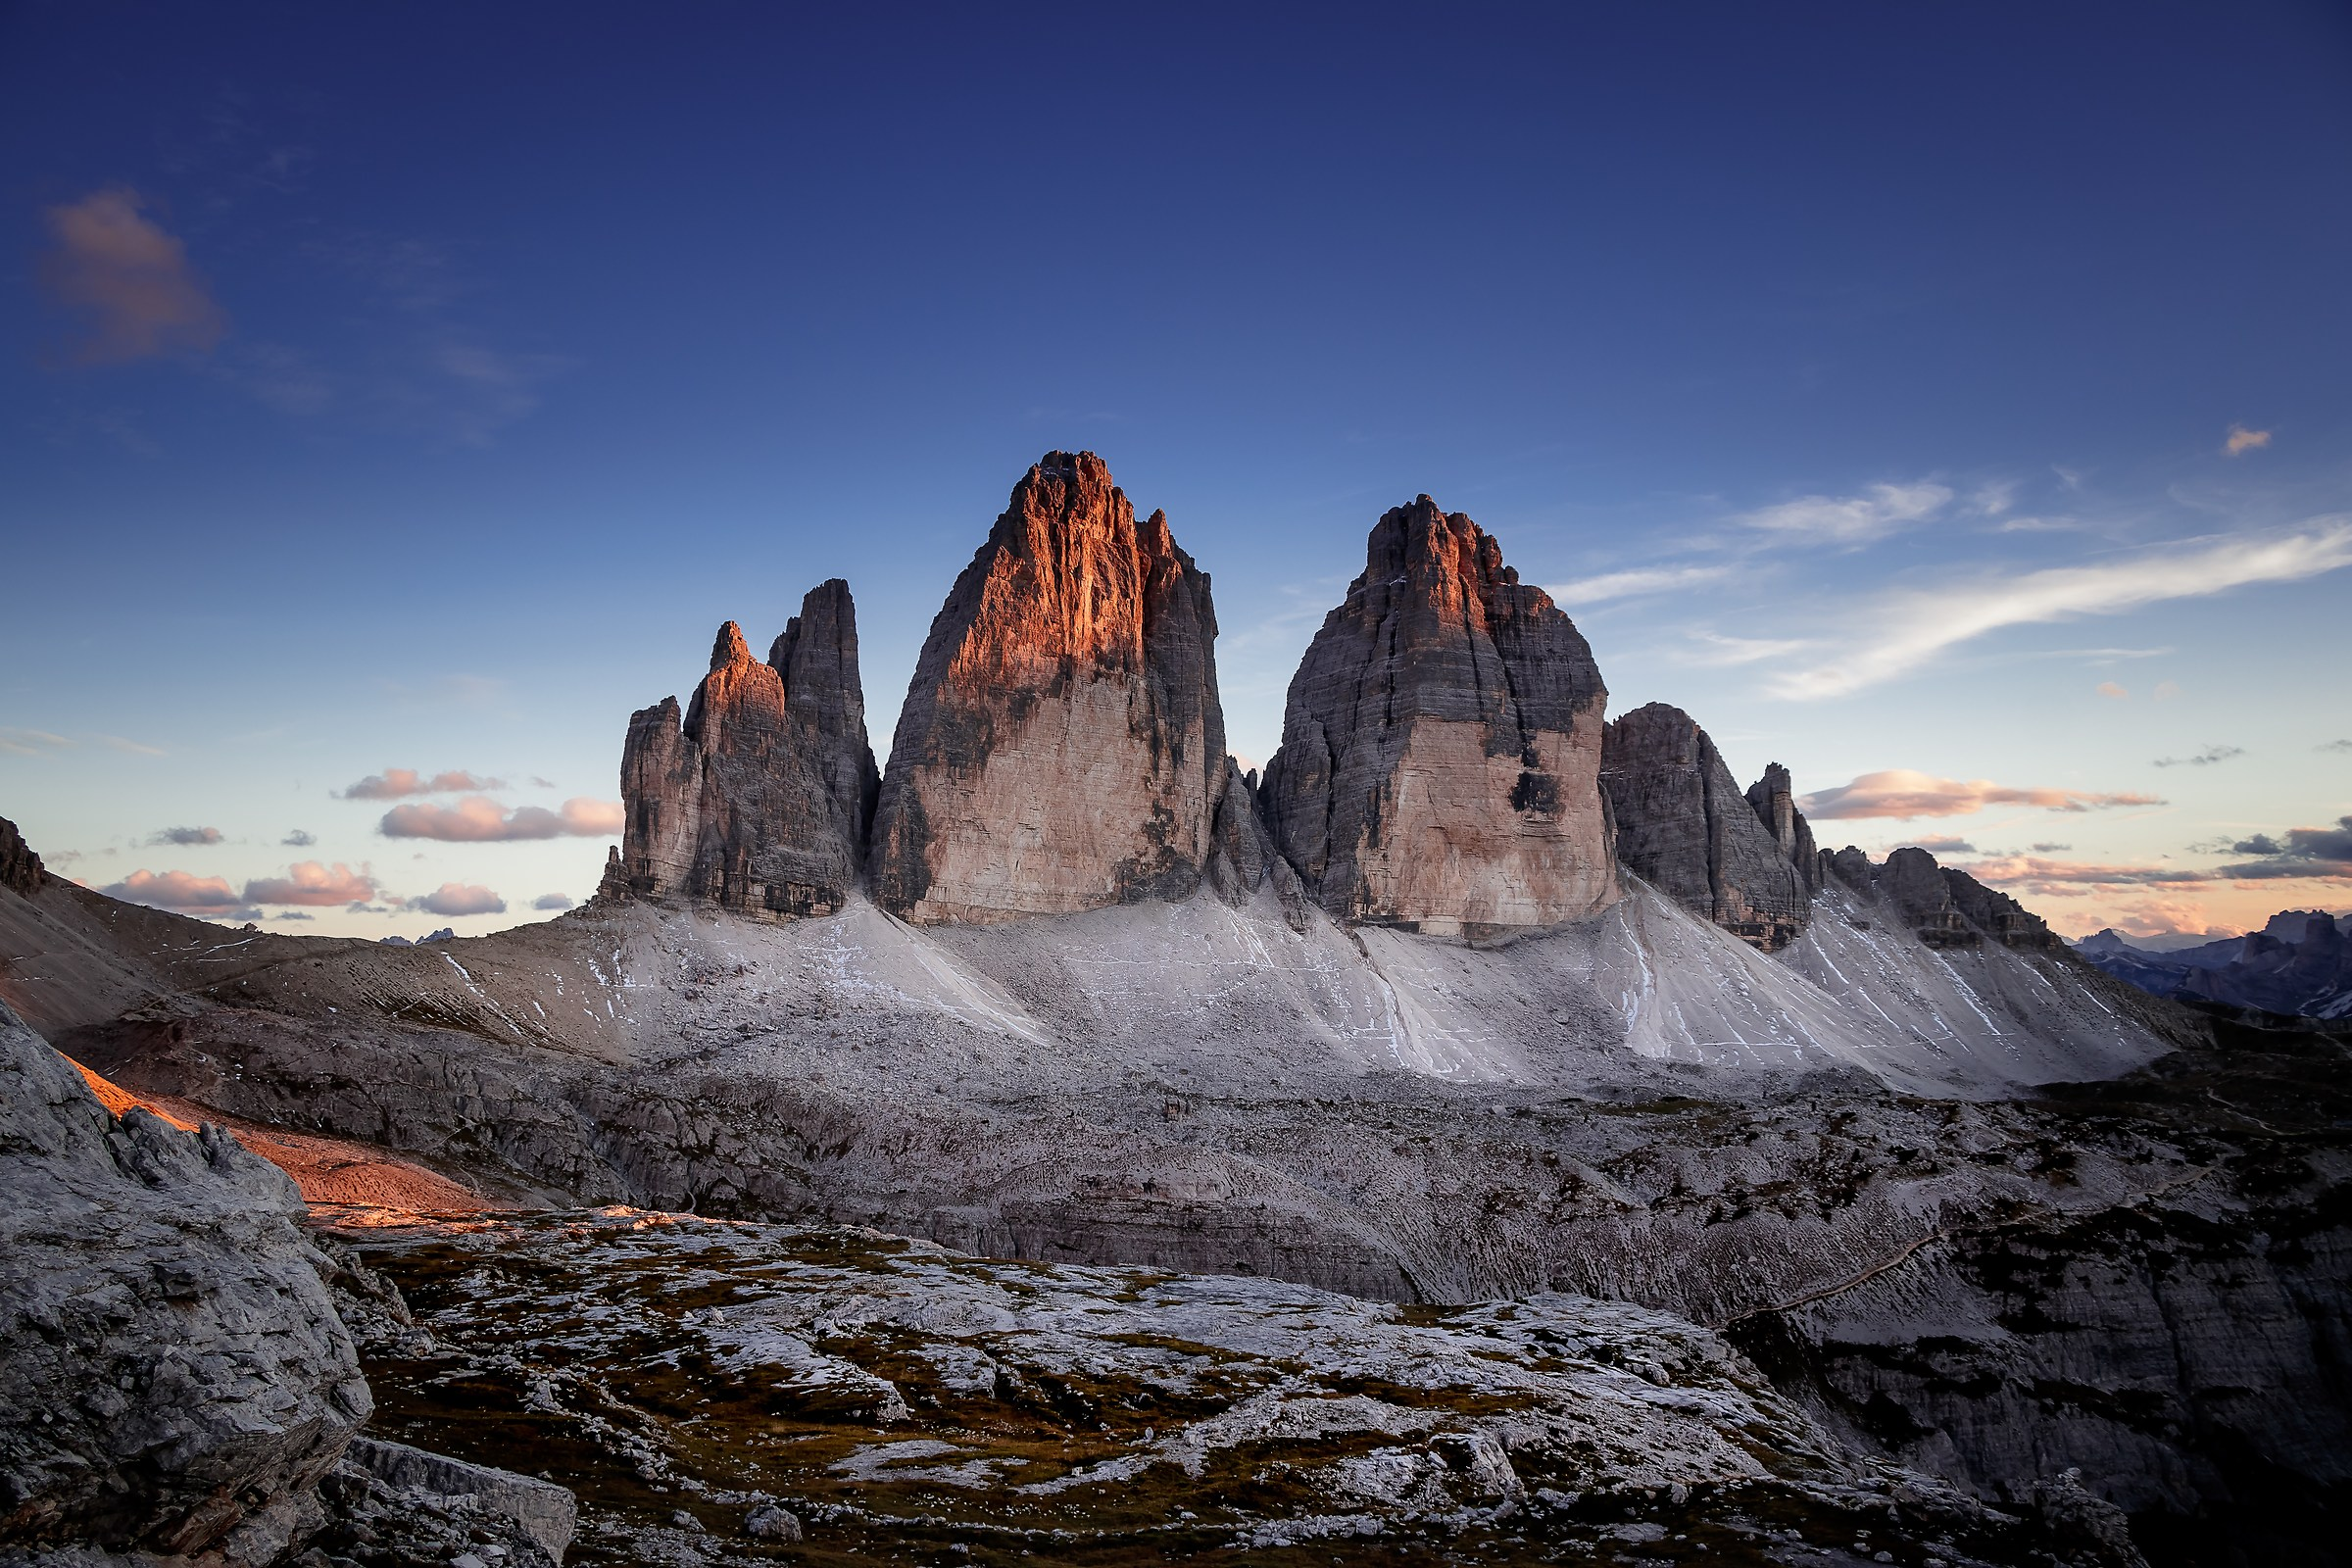 Sunset at Tre Cime di Lavaredo...